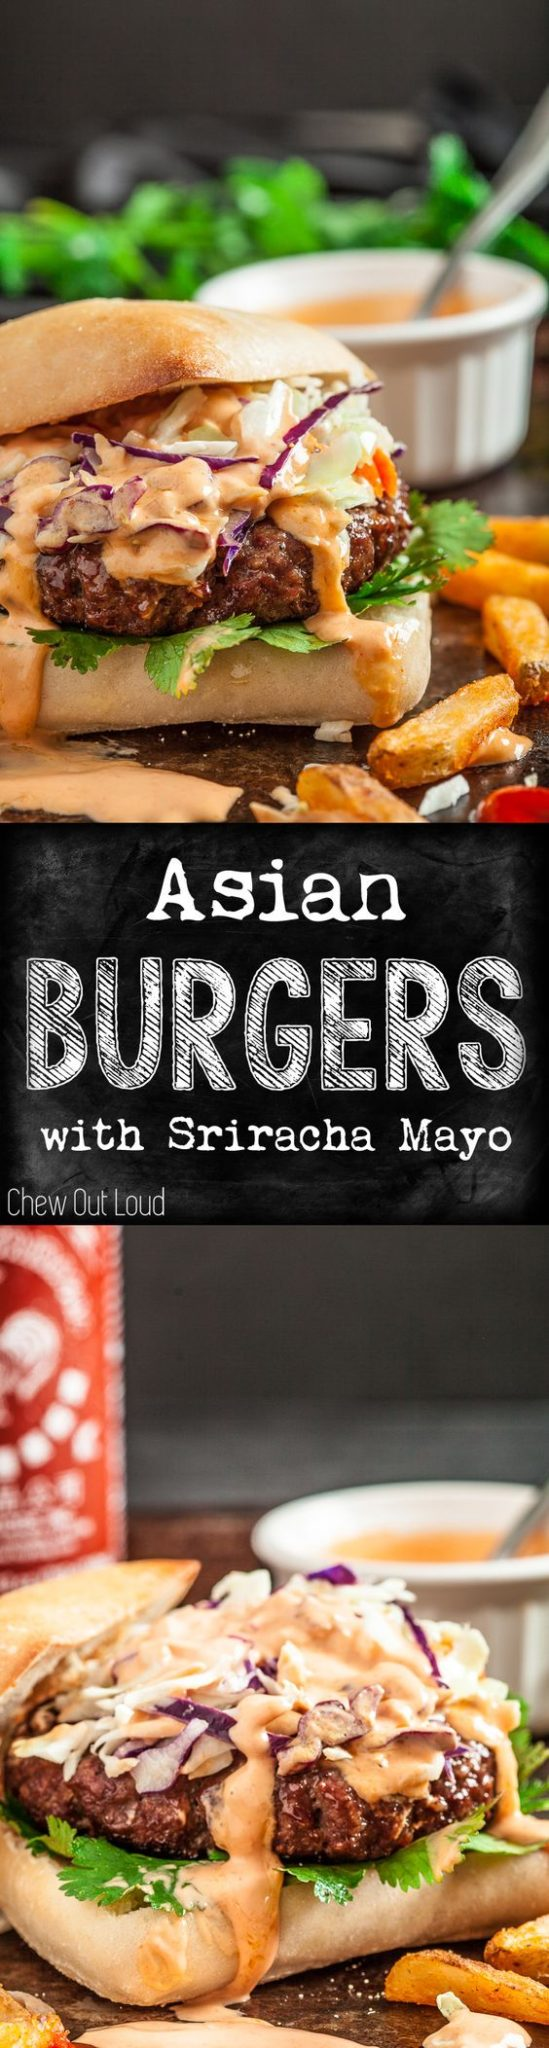 Hamburger Recipes - The BEST Ground Beef Asian Burgers ready for the grill with Sriracha Mayo - Recipe via Chew Out Loud #burgers #gourmetburgers #burgerrecipes #cookouts #grilling #barbecue #hamburgers #fathersday #fathersdayfood #bbq #partyfood #tailgating #superbowlfood #superbowl #summerfood #easylunches #easydinners #easysuppers